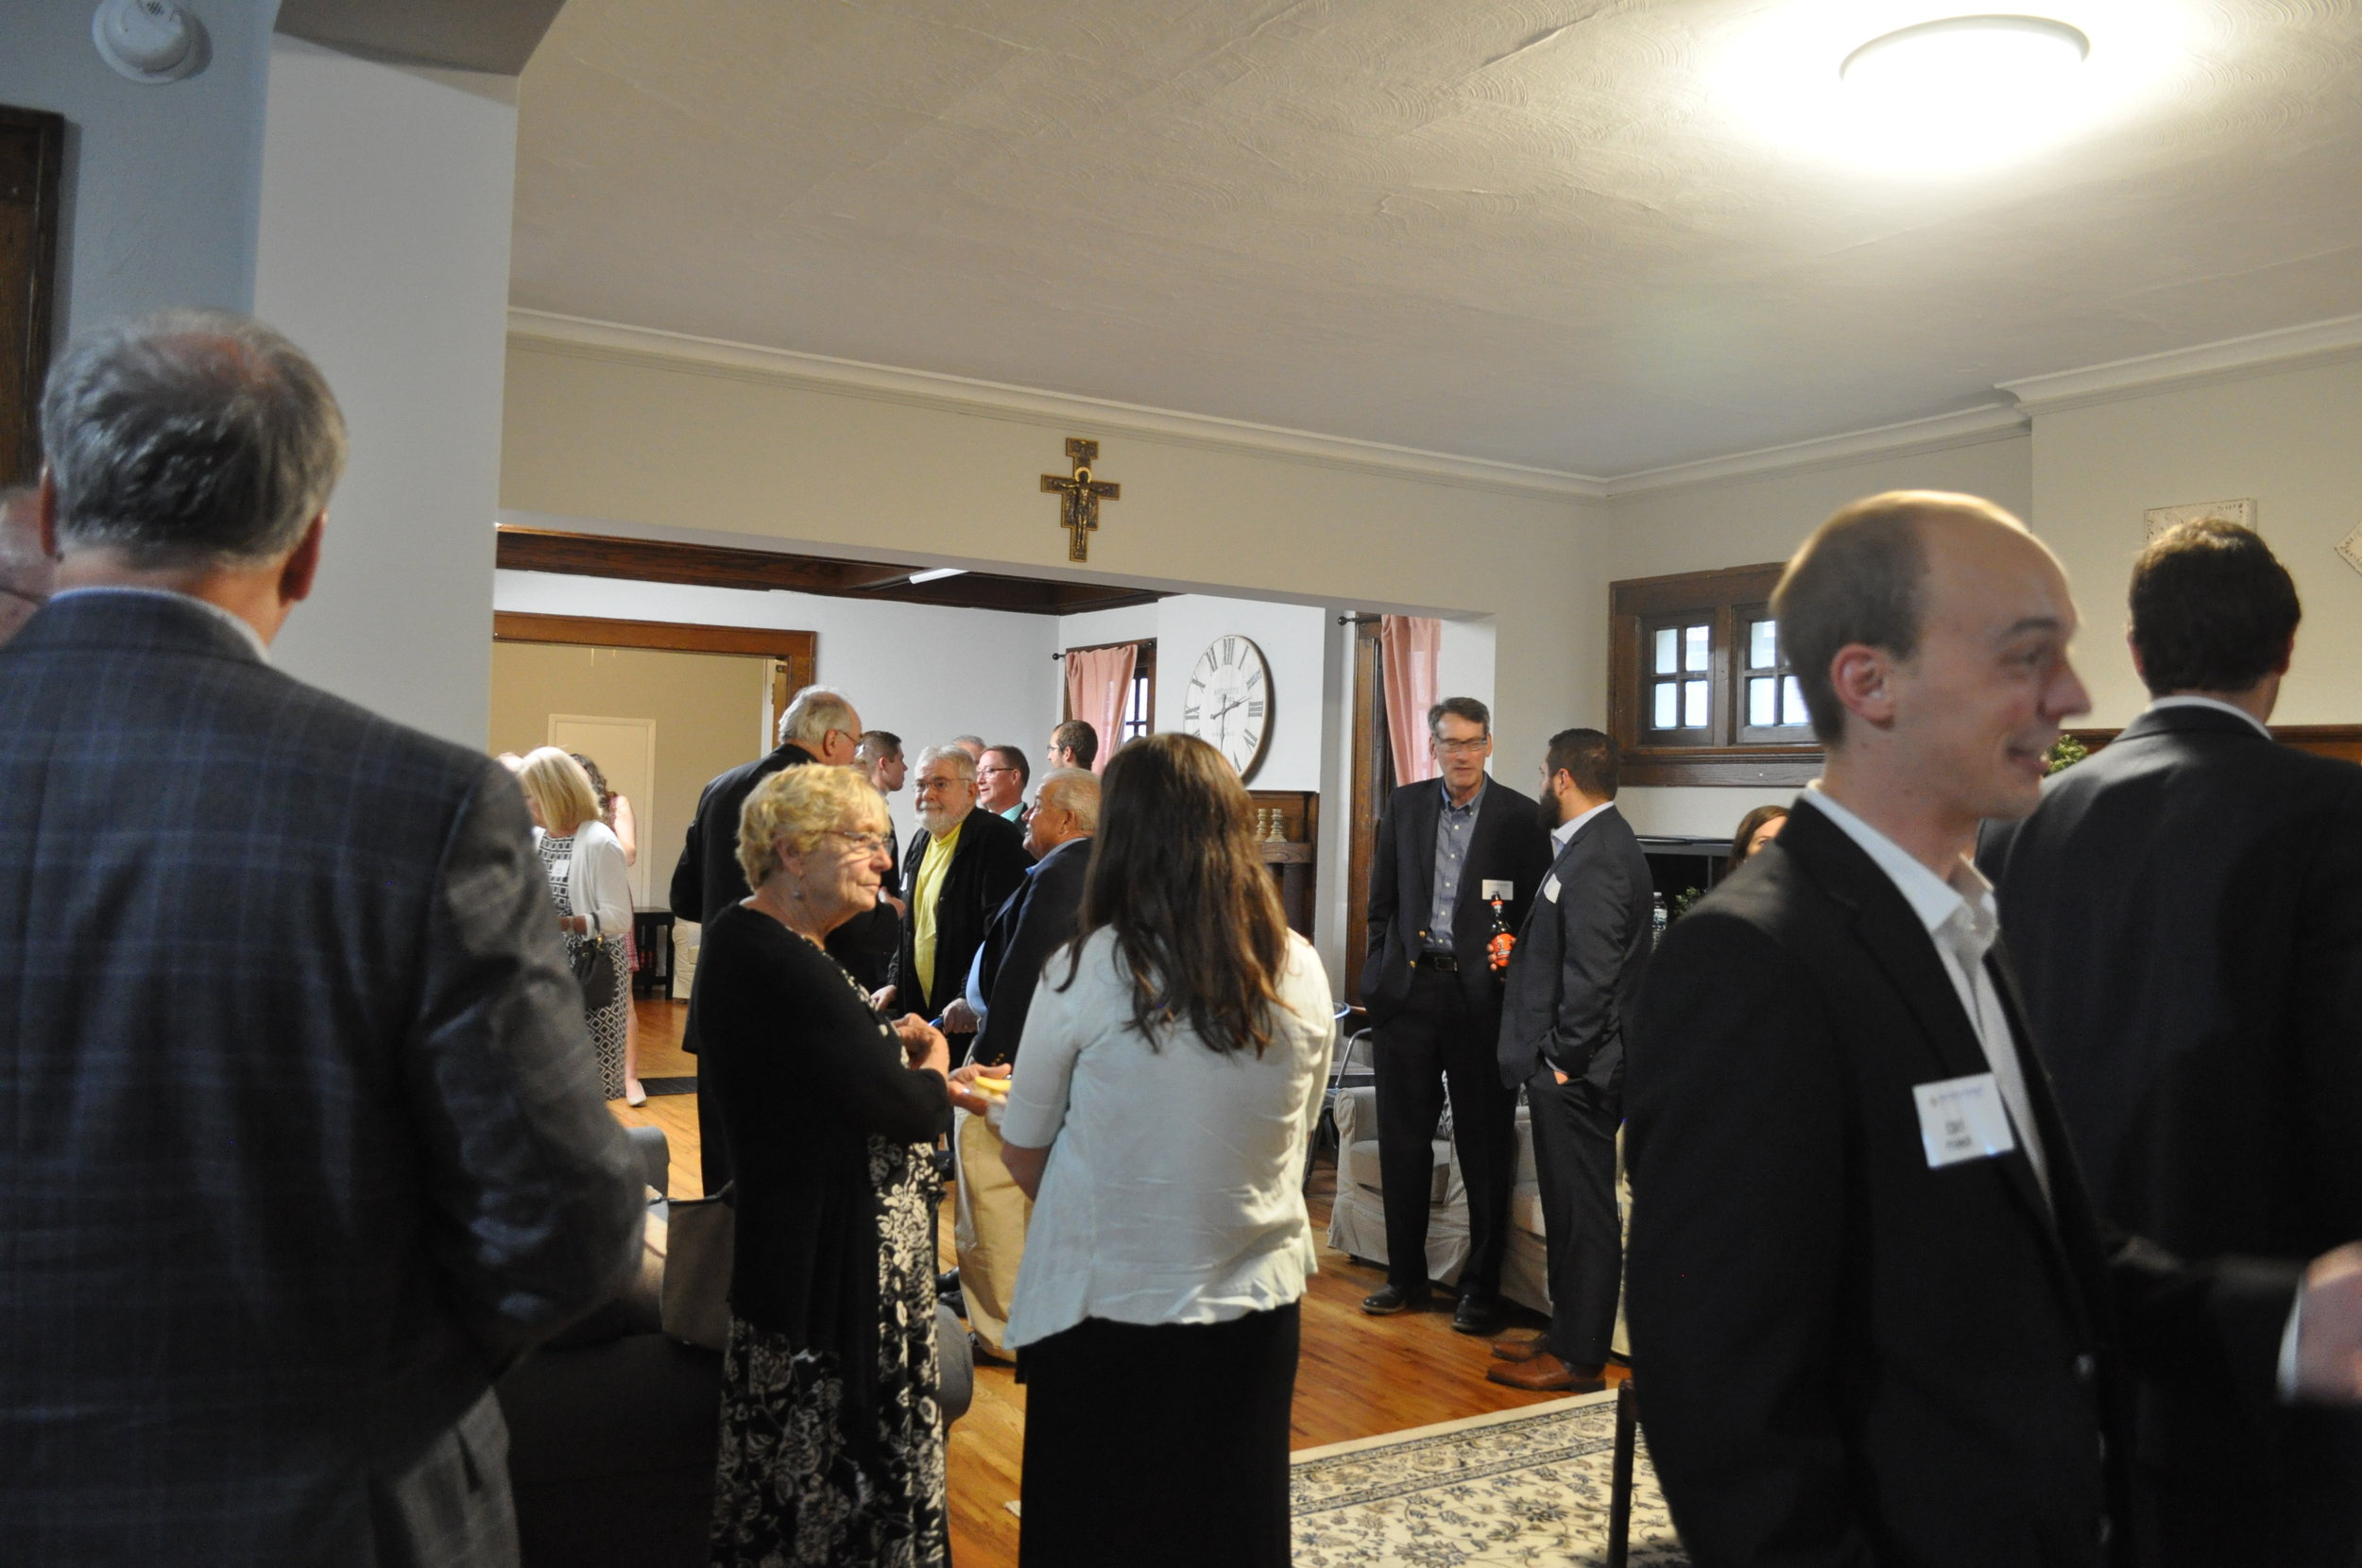 Guests gathered in the living room of Siena